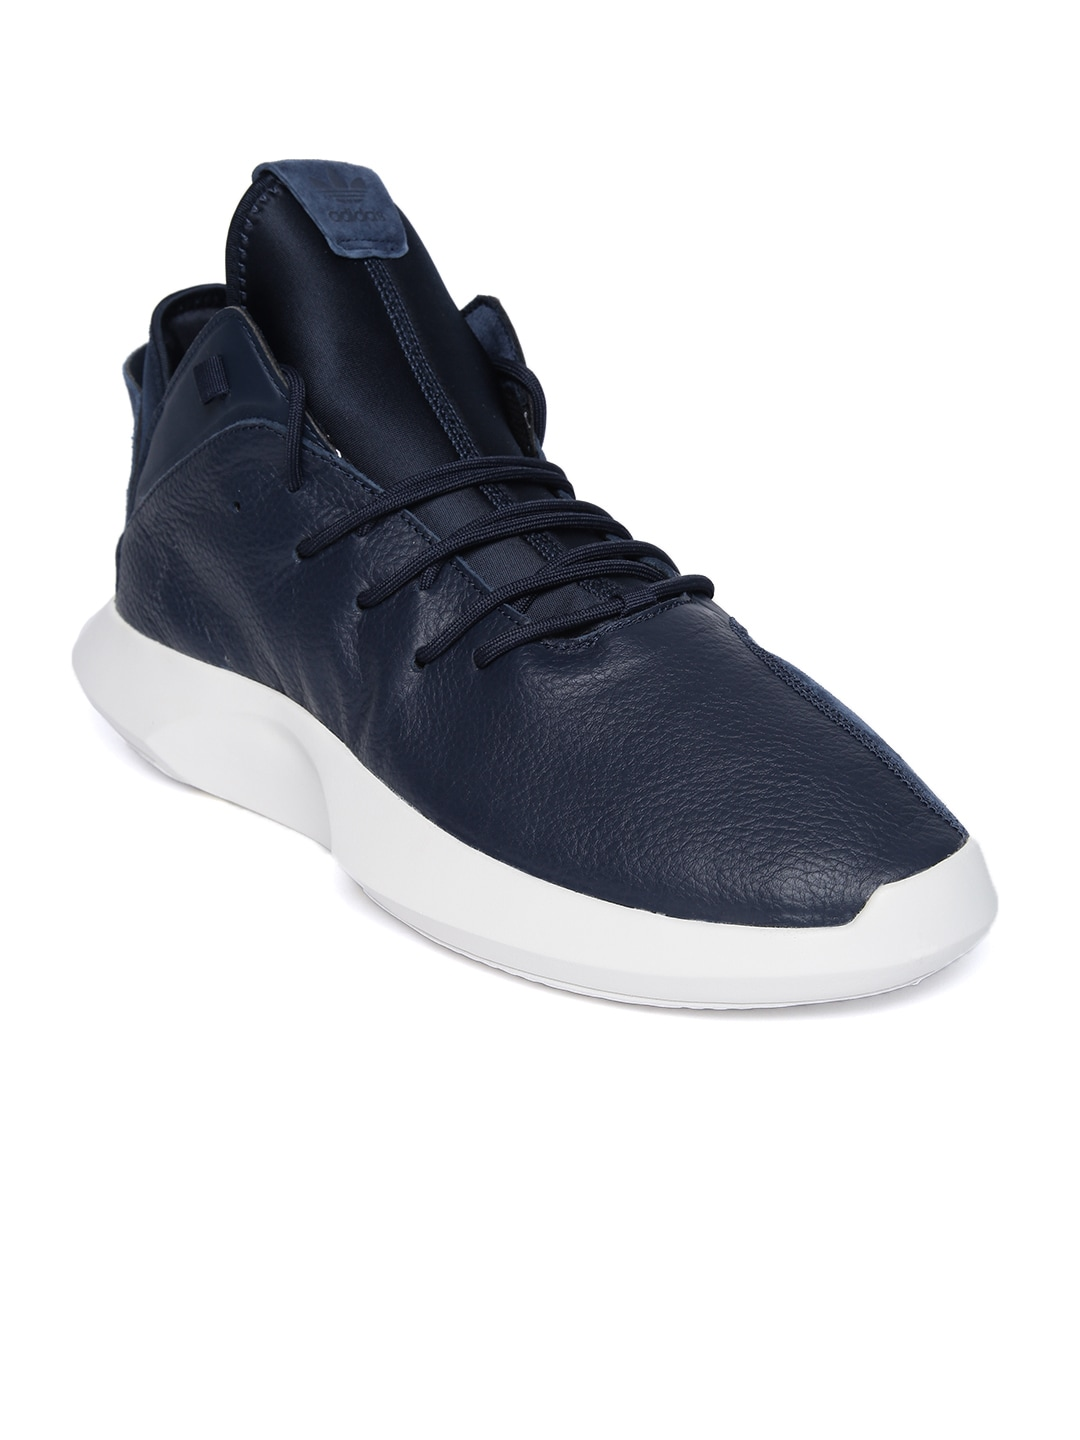 2bccbb48339ac6 Adidas Leather Shoes - Buy Adidas Leather Shoes Online in India